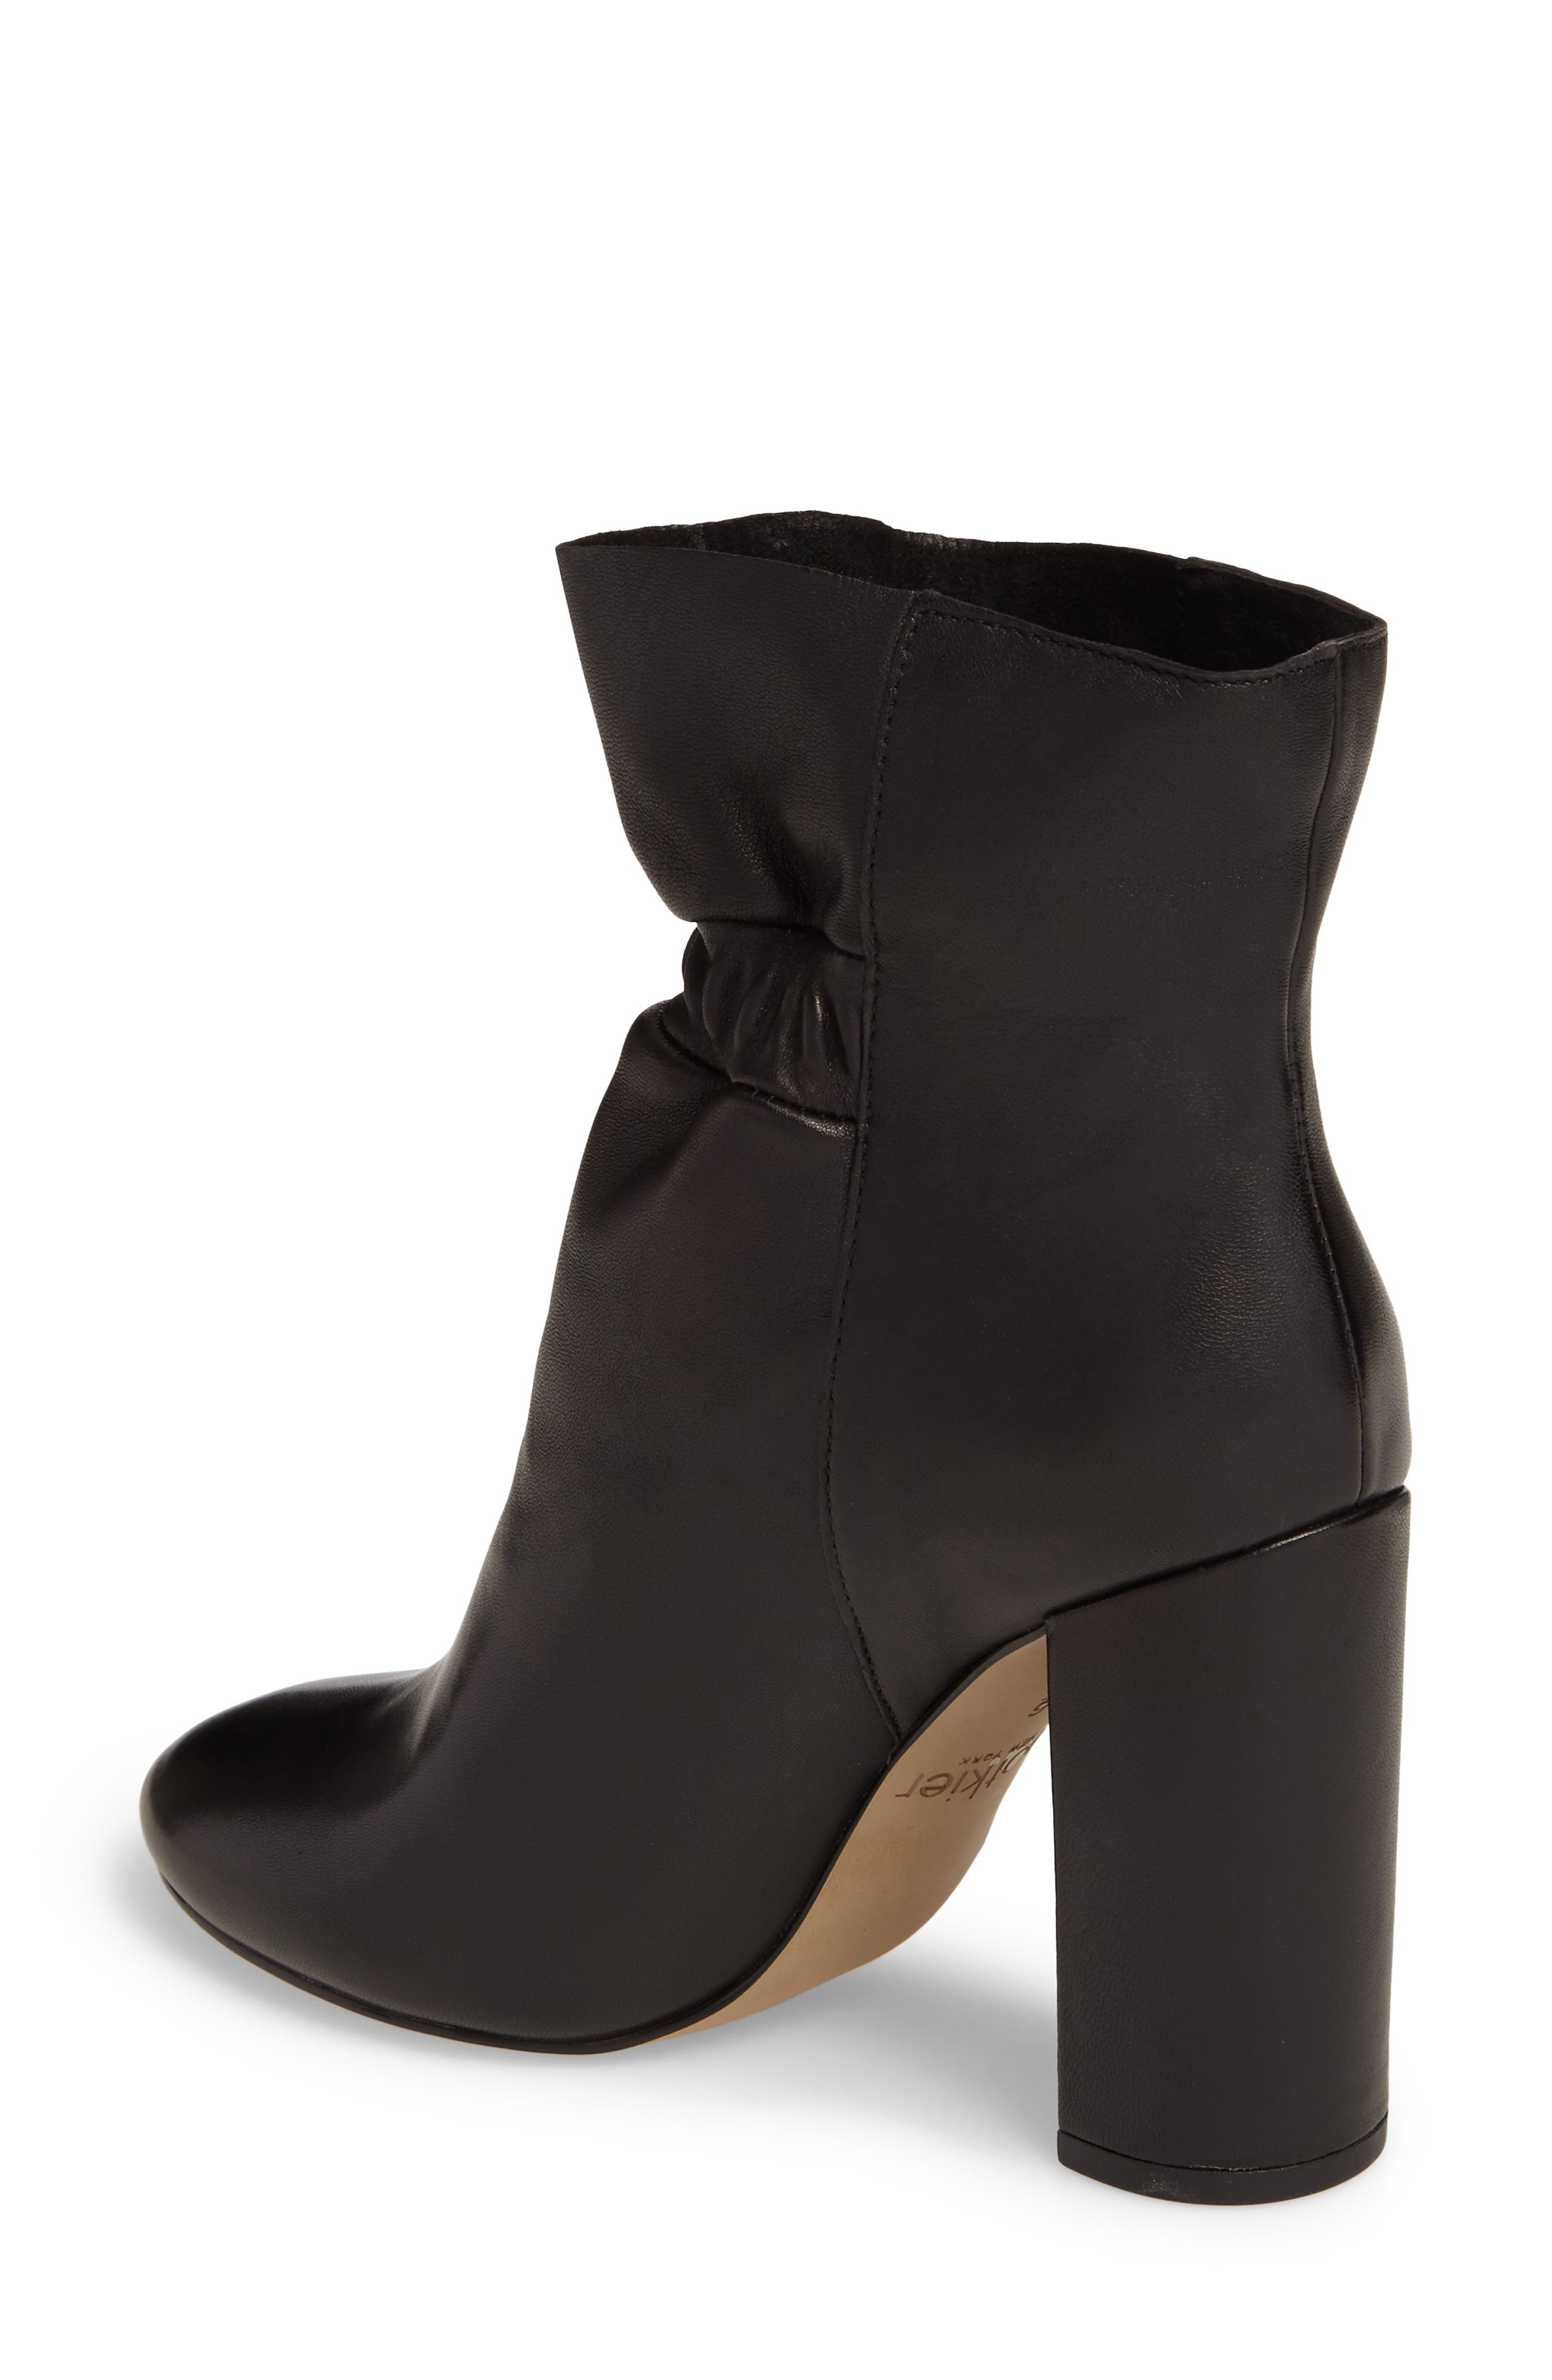 BOTKIER, Rylie Boot, Alternate thumbnail 2, color, 001